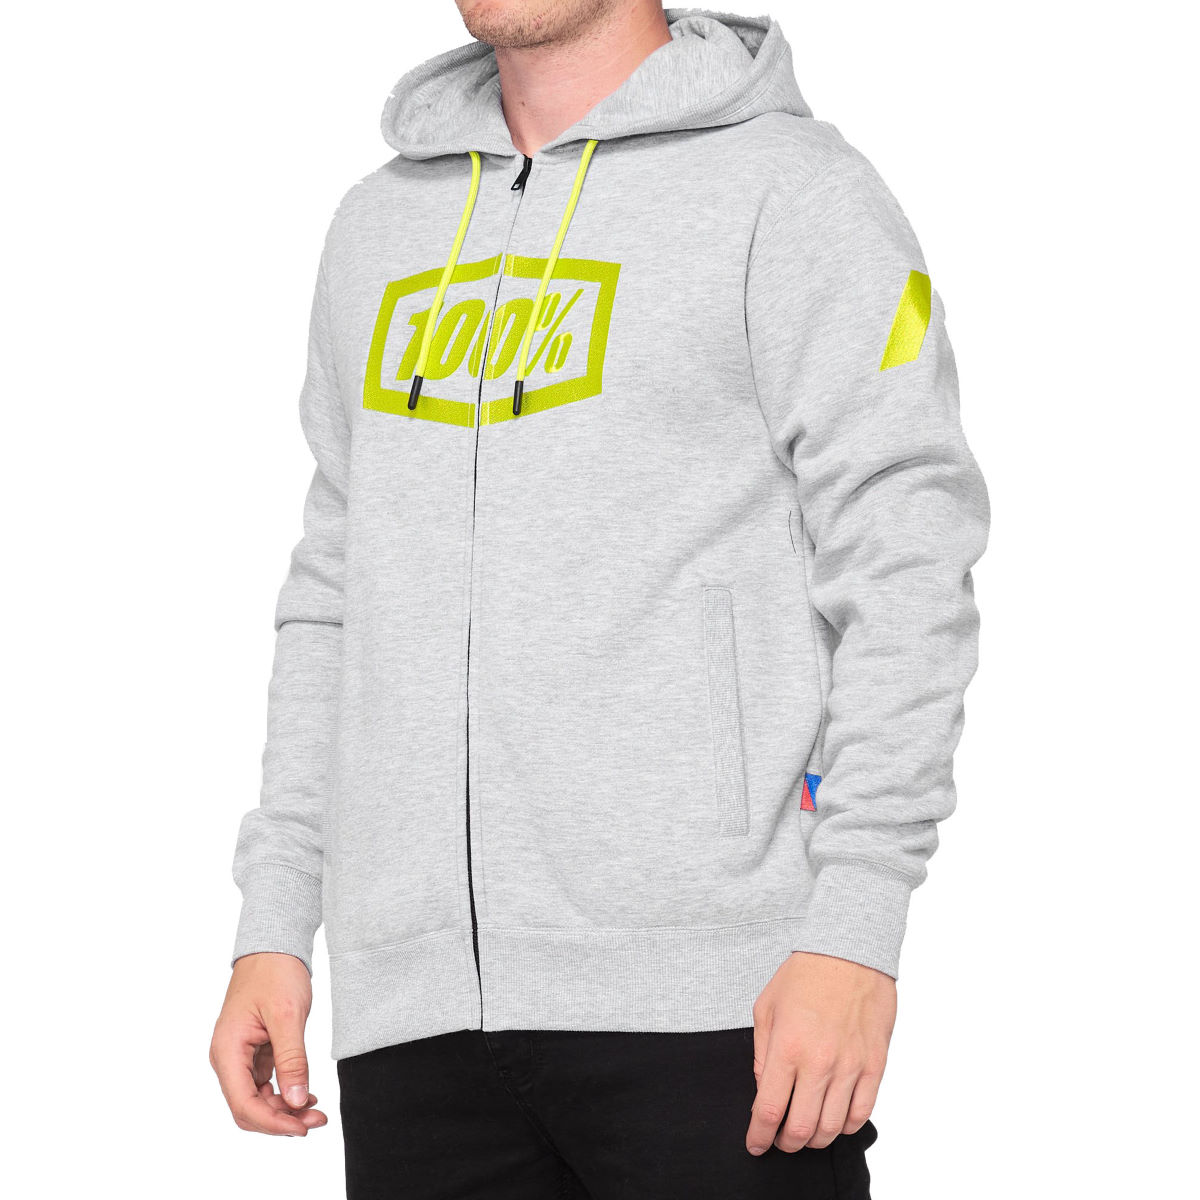 100% Syndicate Zip Hooded Sweatshirt - M Grey/yellow  Sweatshirts